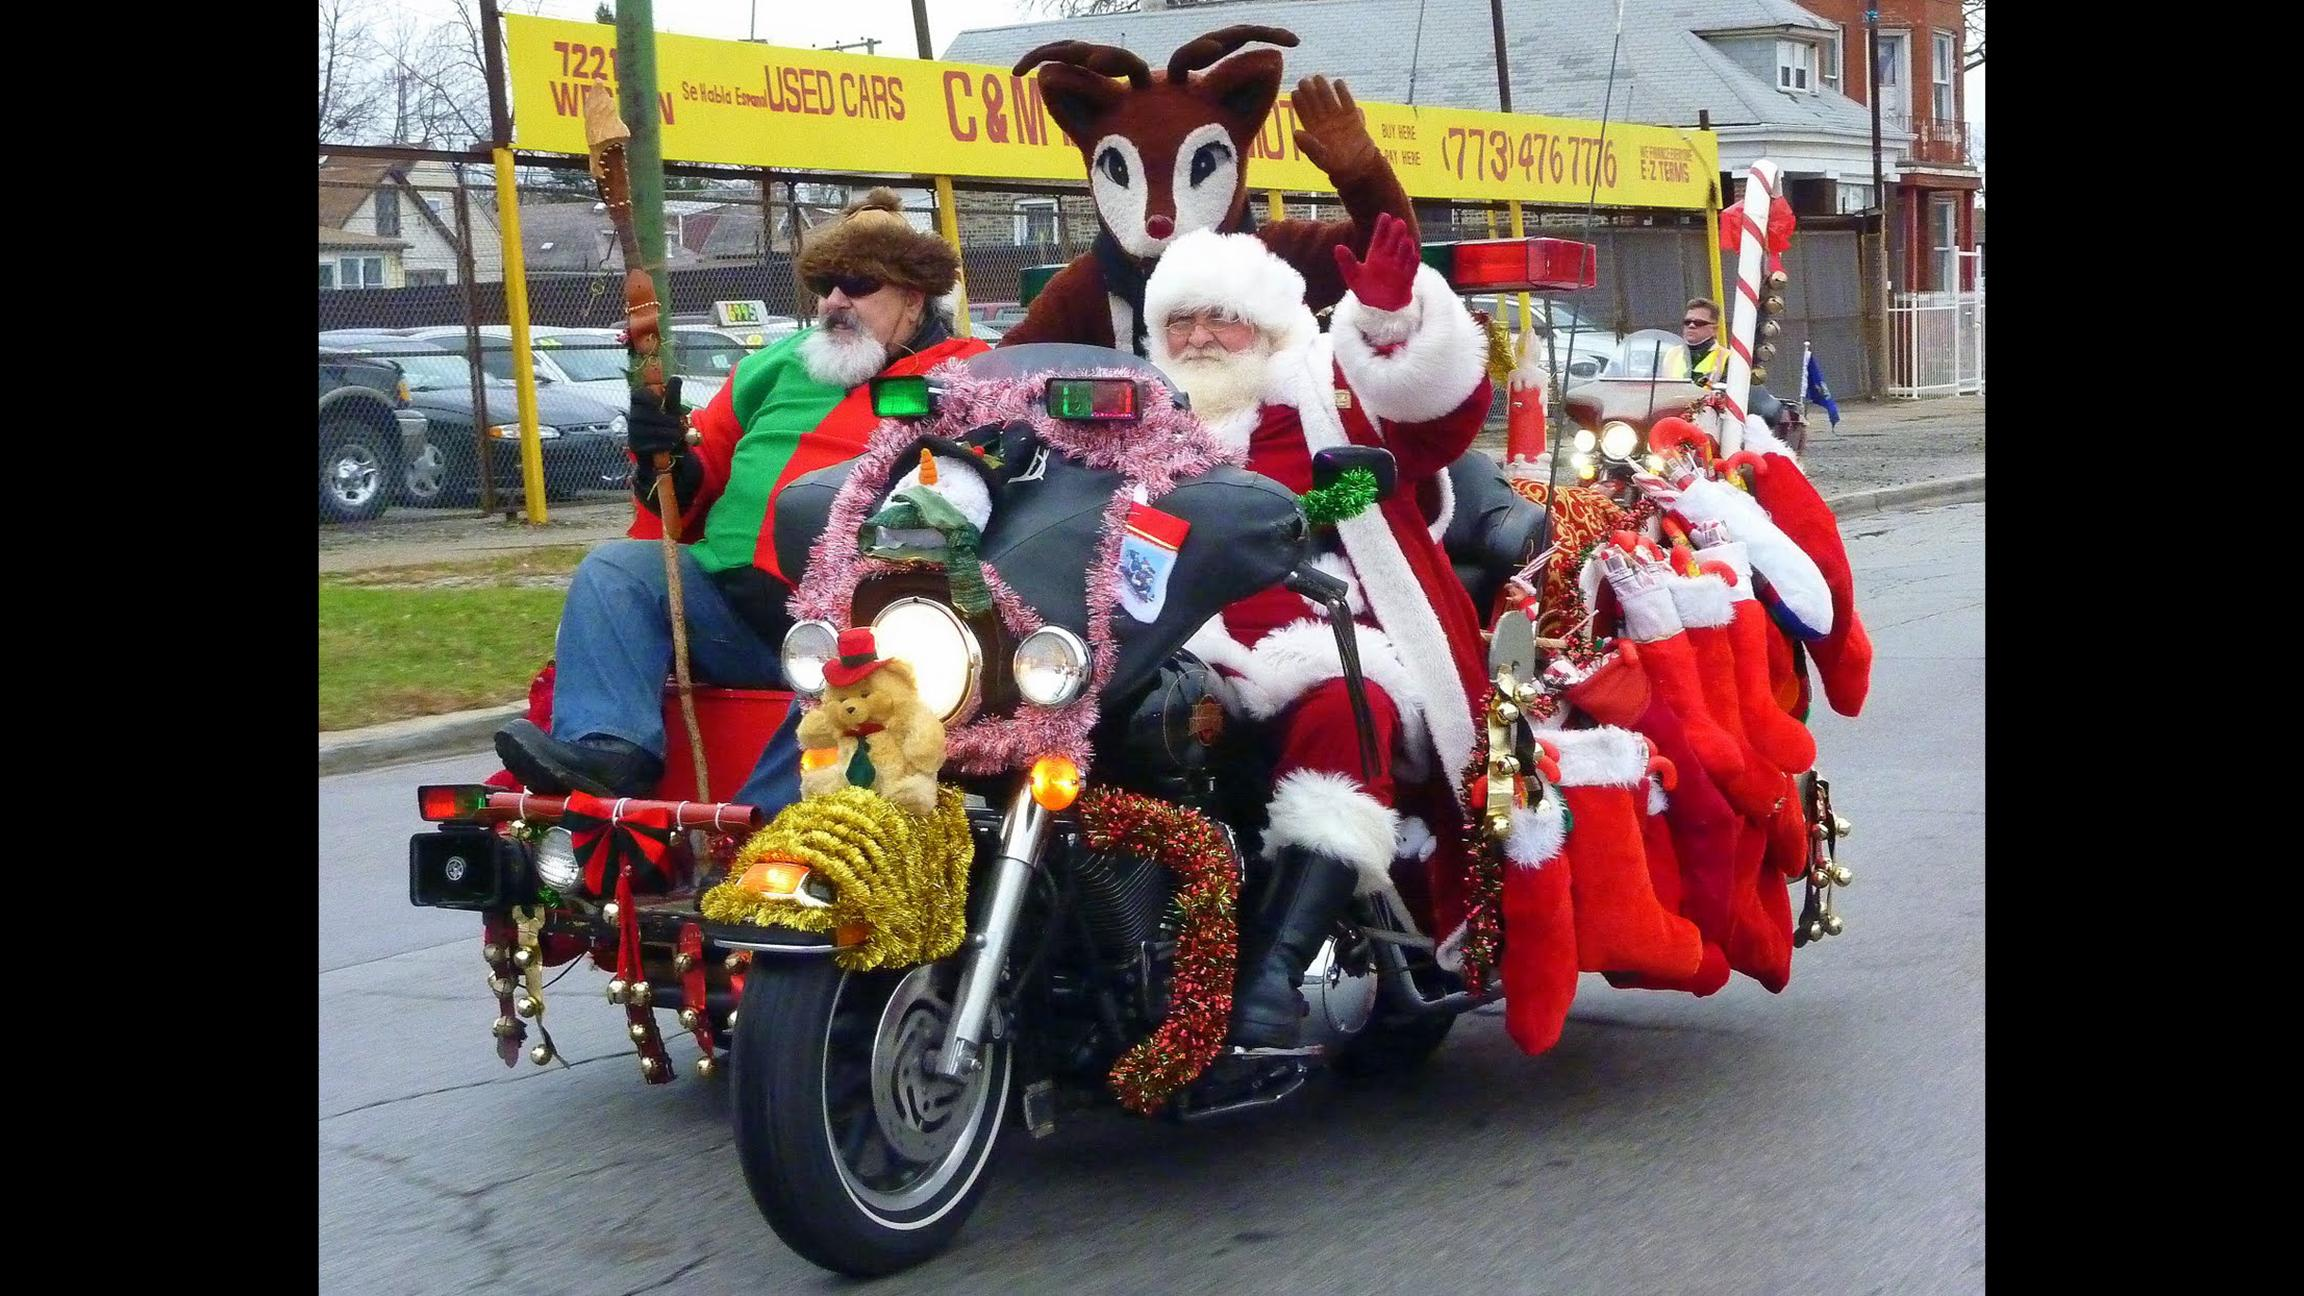 Santa swaps his sleigh for a motorcycle this weekend. Spot him along Western Avenue. (Jack Voss / Chicago Toys for Tots Motorcycle Parade)